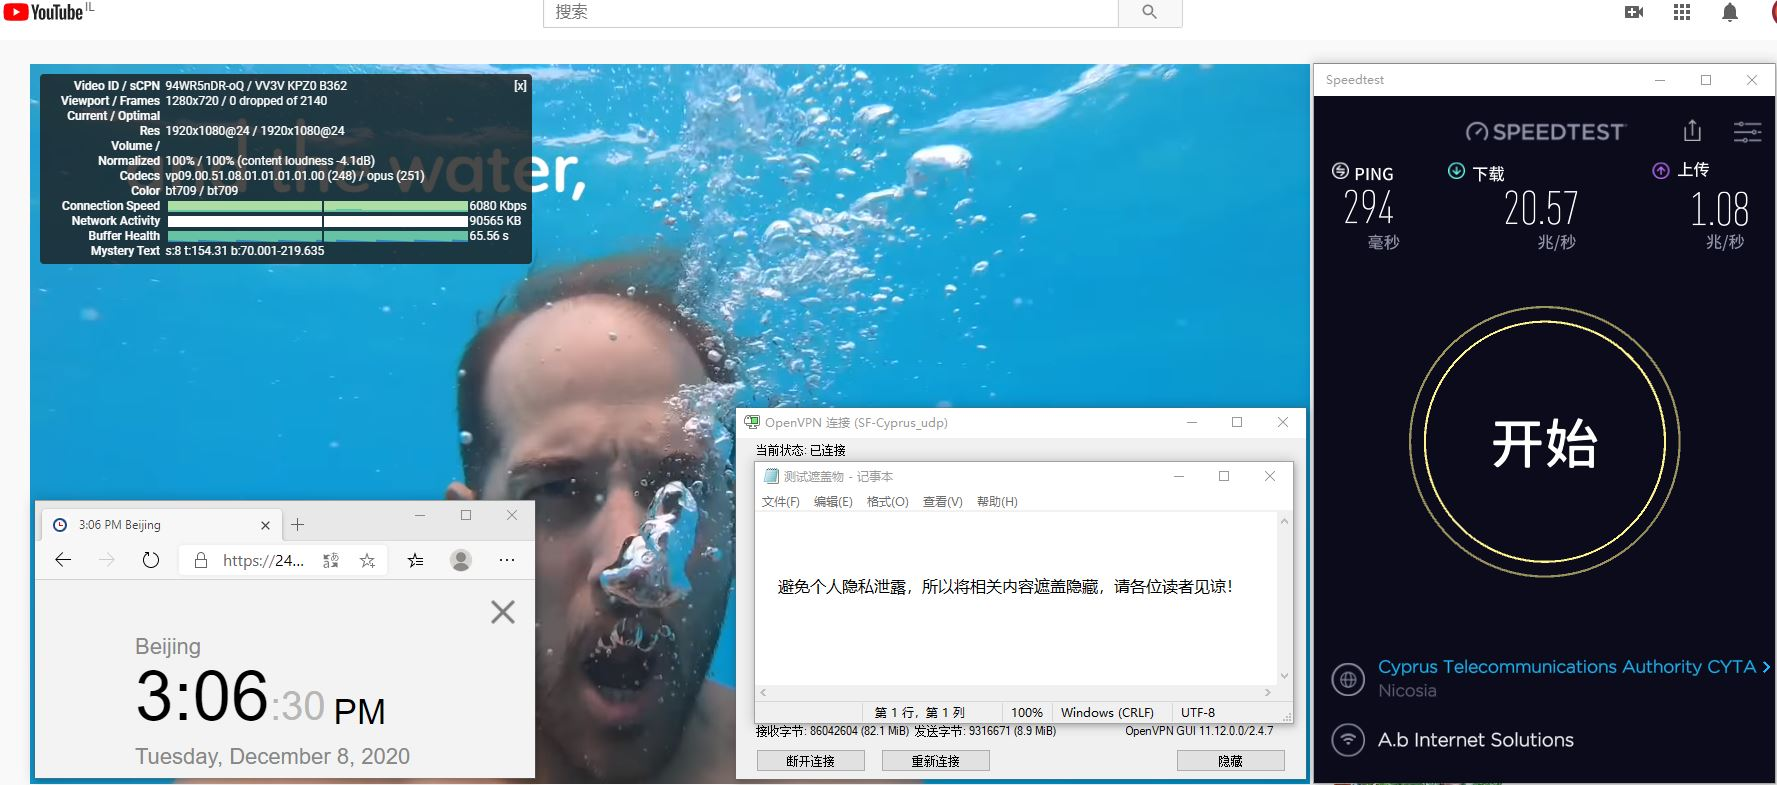 Windows10 SurfsharkVPN OpenVPN Gui Cyprus 服务器 中国VPN 翻墙 科学上网 测试 - 20201208